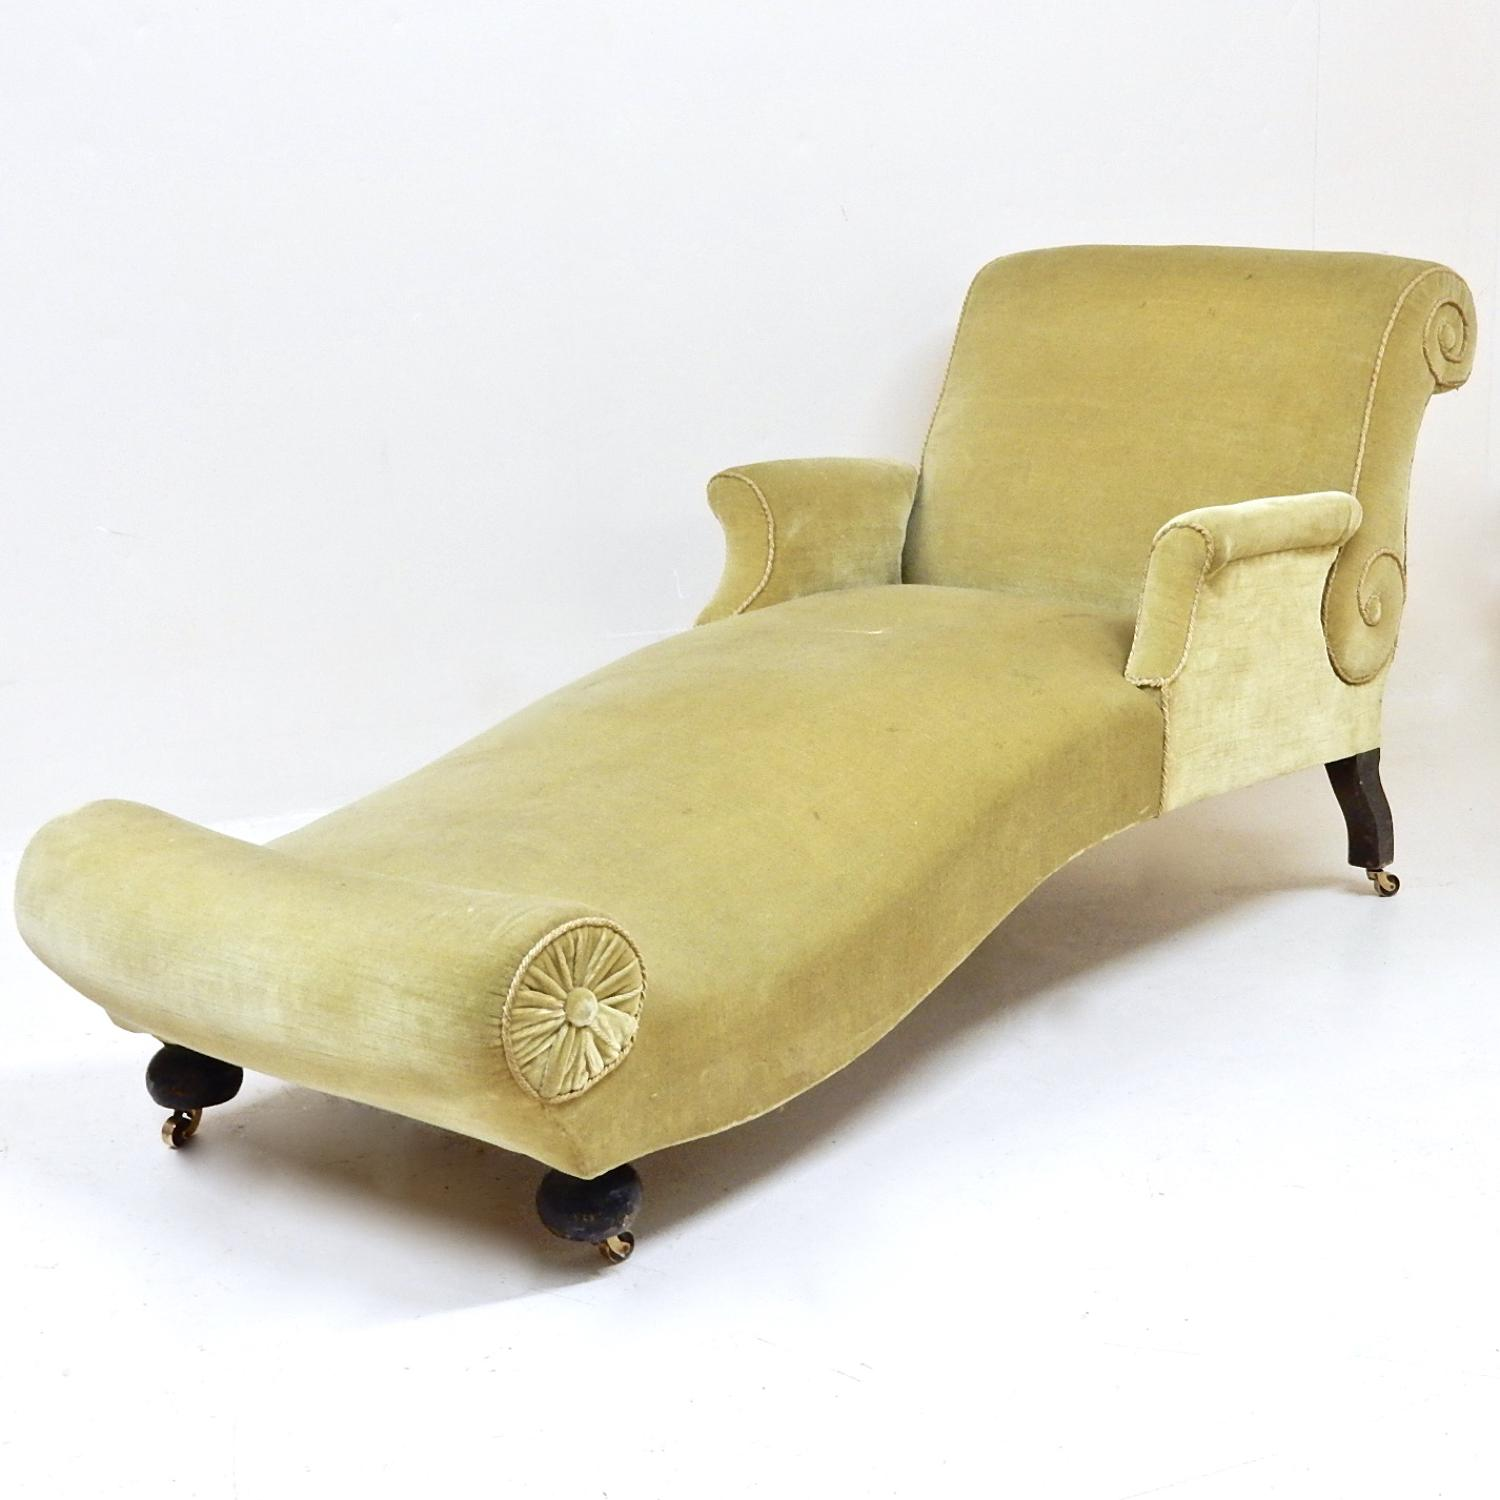 Antique Reclining Day Bed